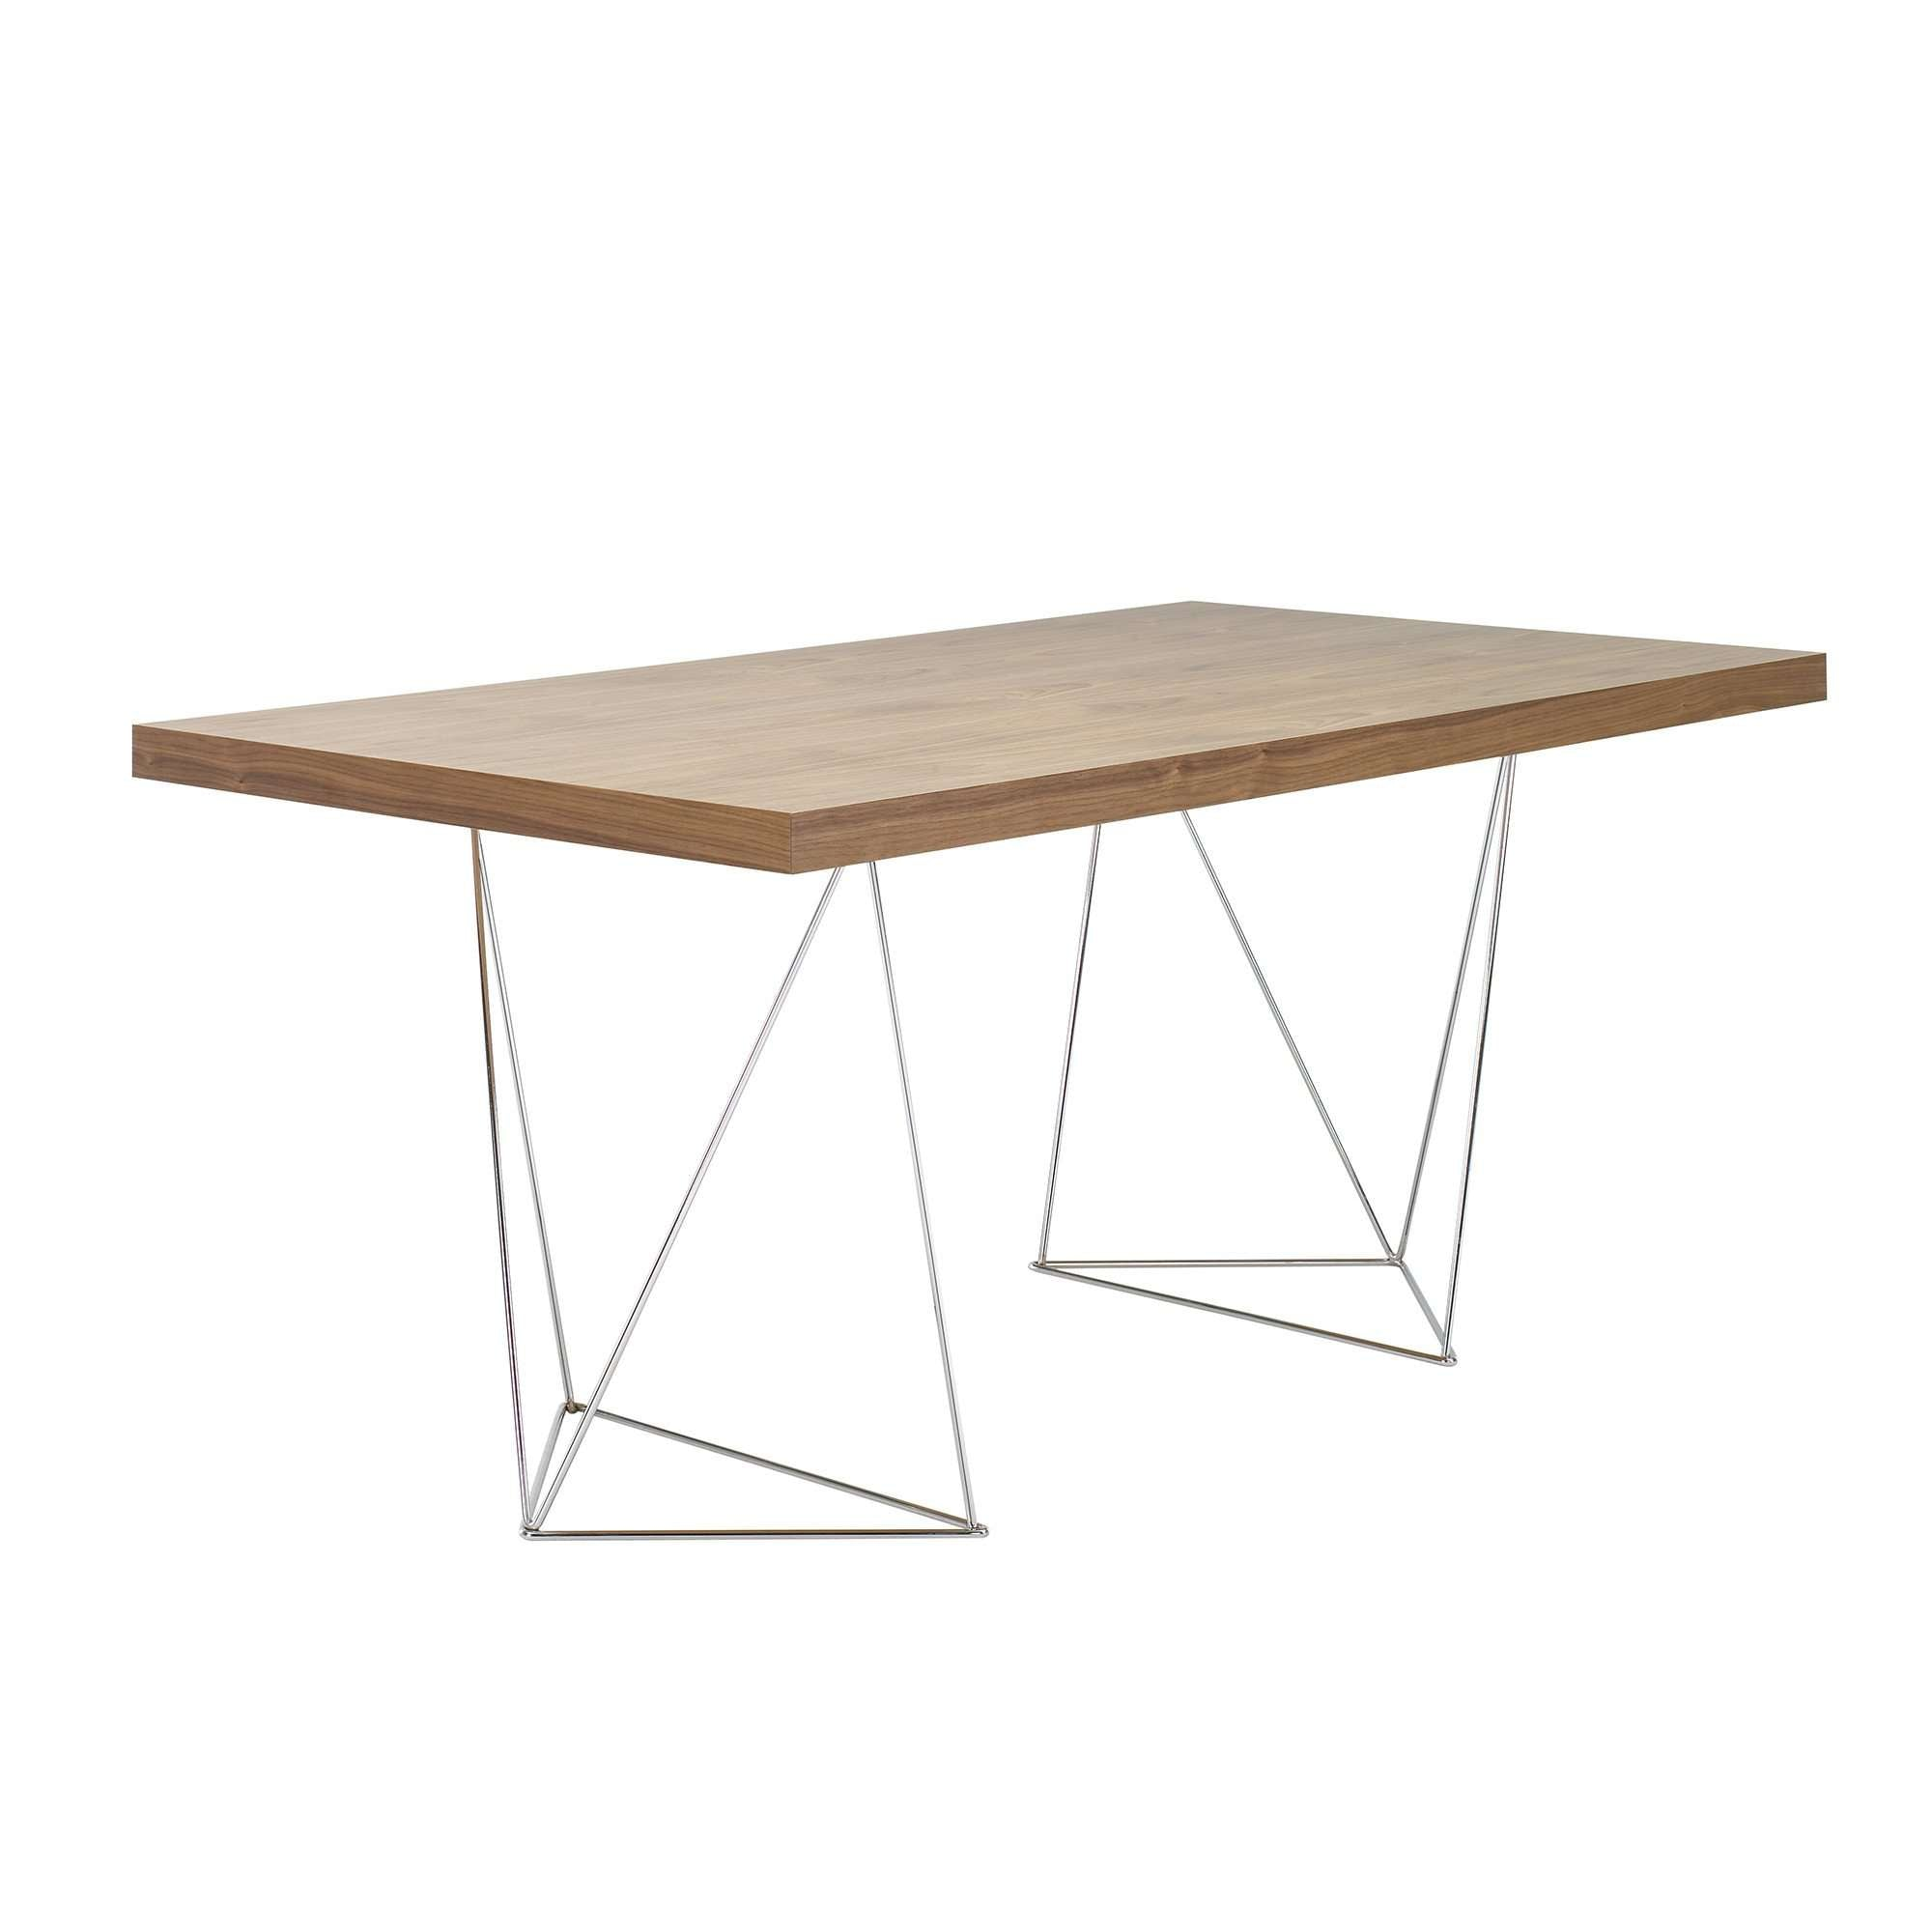 "Tema Home-Multi 63"" Table Top w/ Trestles 077040-MULTI63T-Dining Table-MODTEMPO"